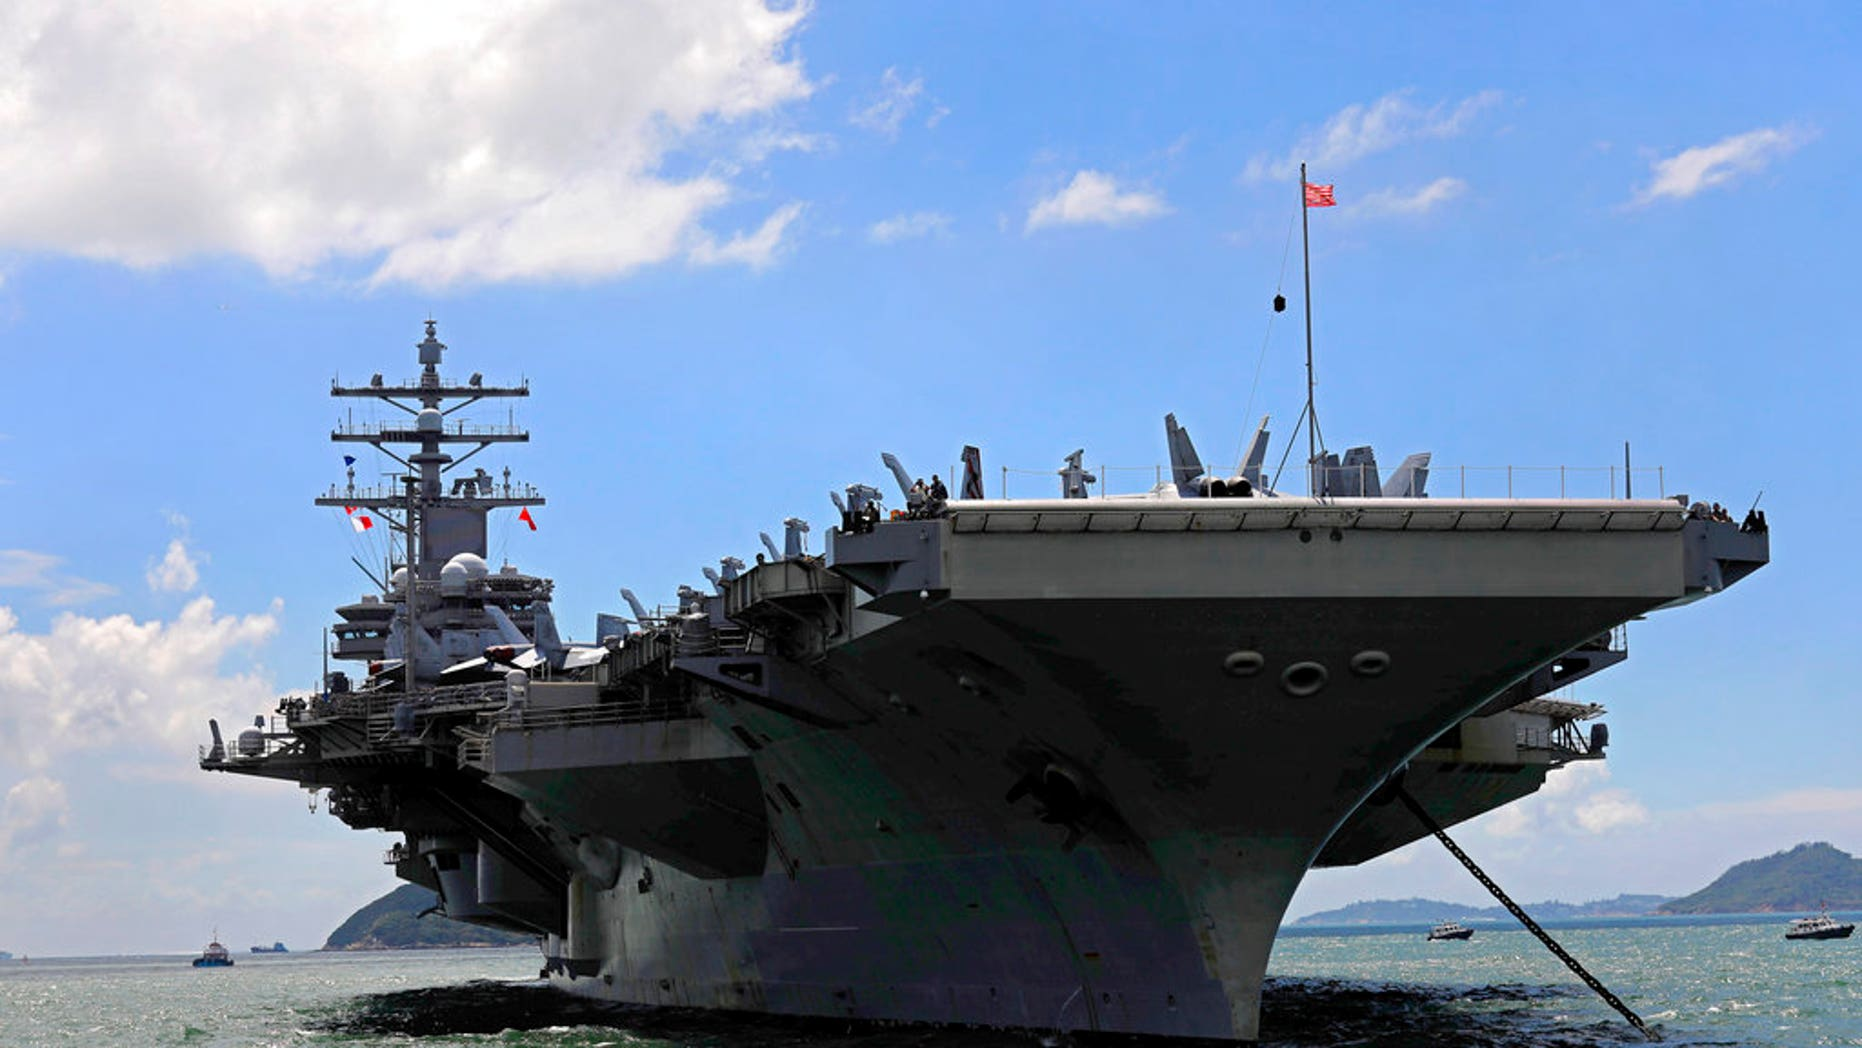 FILE - In this Monday, Oct. 2, 2017, file photo, the USS Ronald Reagan aircraft carrier arrives in Hong Kong. A U.S. Navy C-2 Greyhound plane carrying 11 crew and passengers crashed into the Pacific Ocean on Wednesday, Nov. 22, 2017, while on the way to the USS Ronald Reagan the Navy said. (AP Photo/Vincent Yu, File)